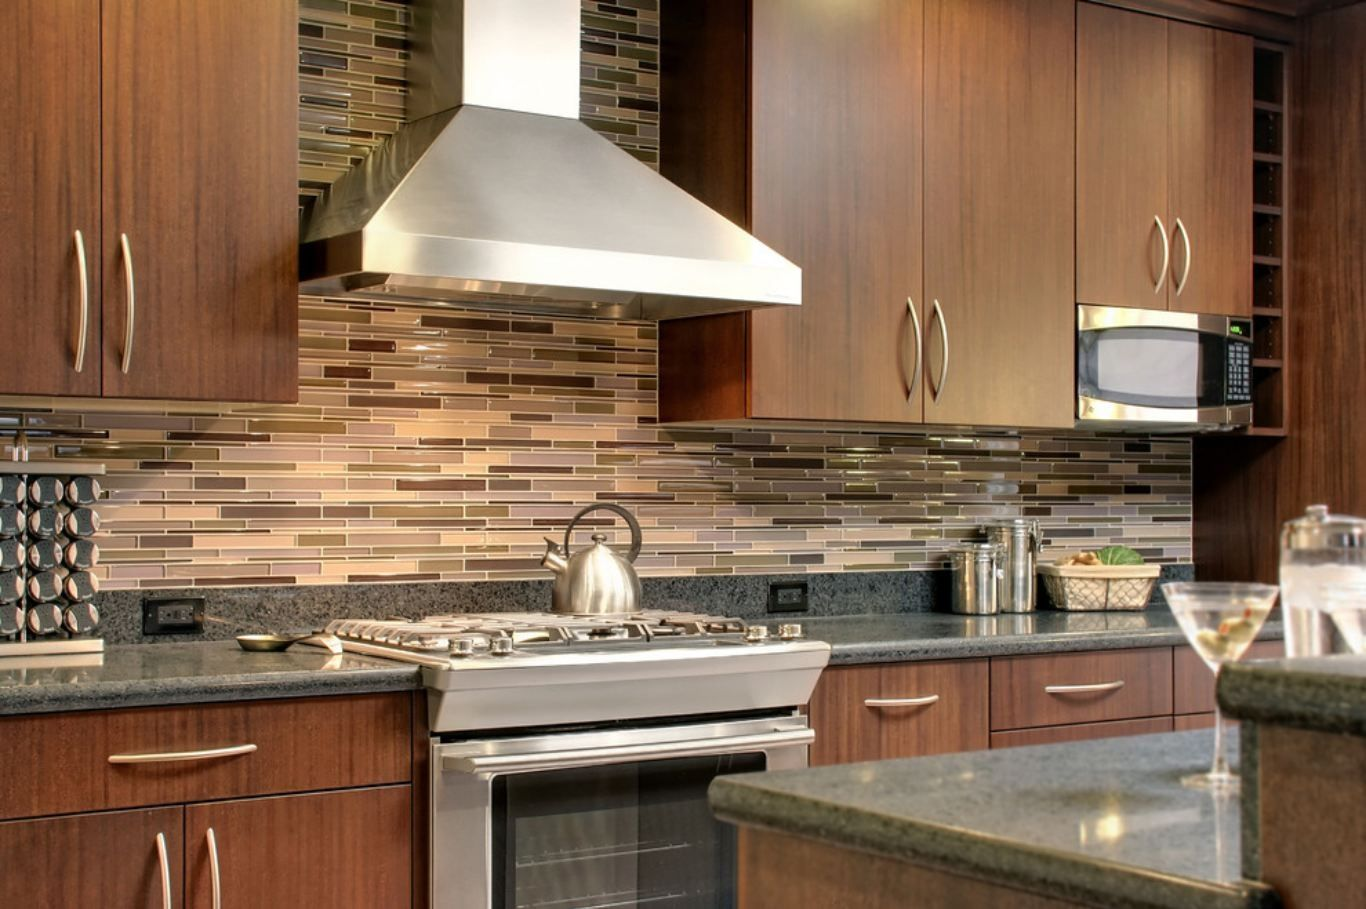 ^ 1000+ images about Kitchen Ideas on Pinterest Oak cabinets ...